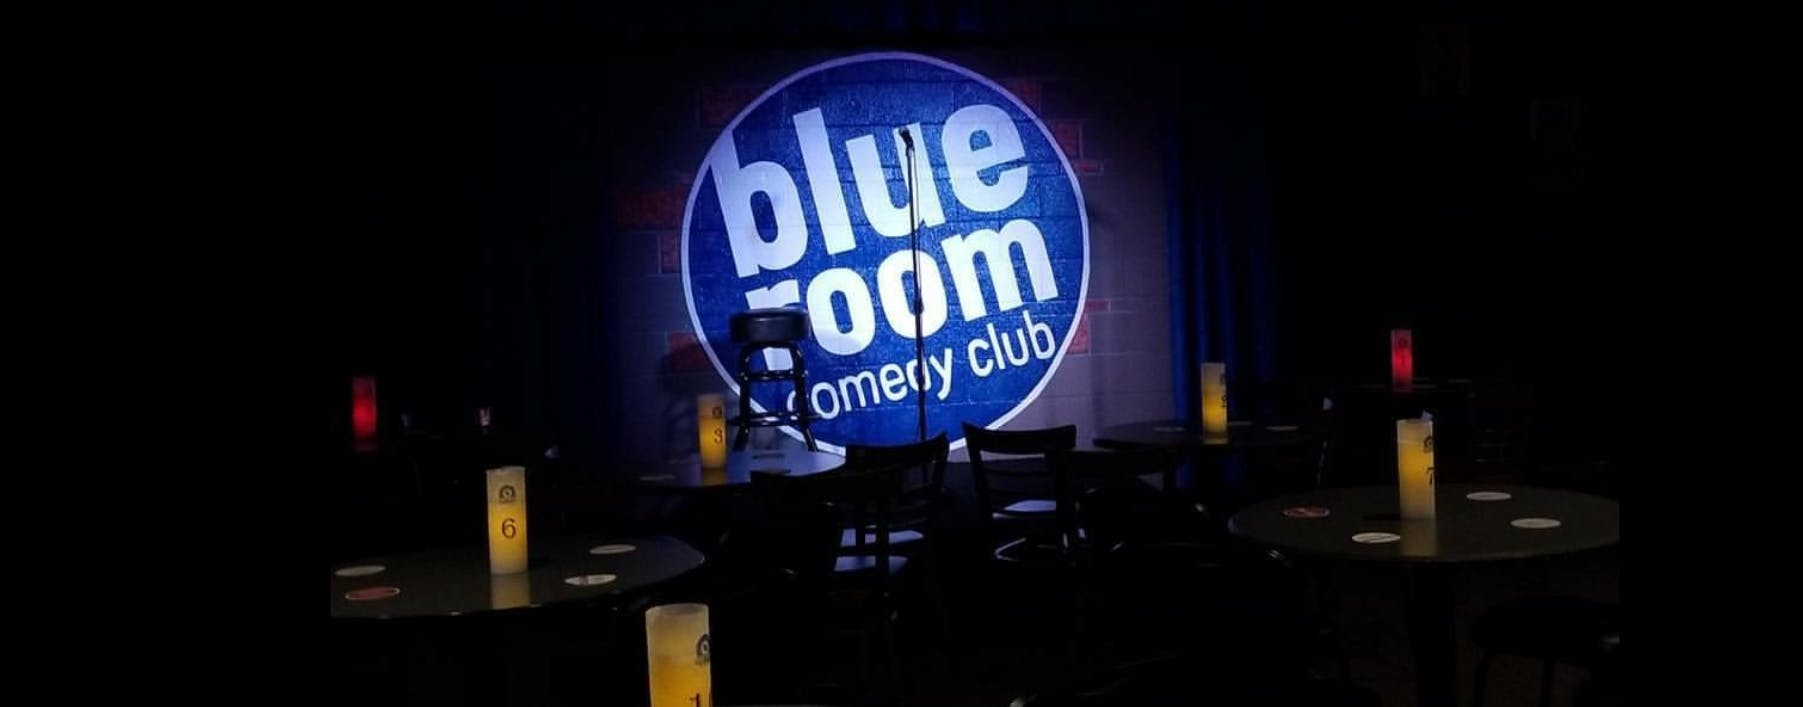 Blue Room Comedy Club